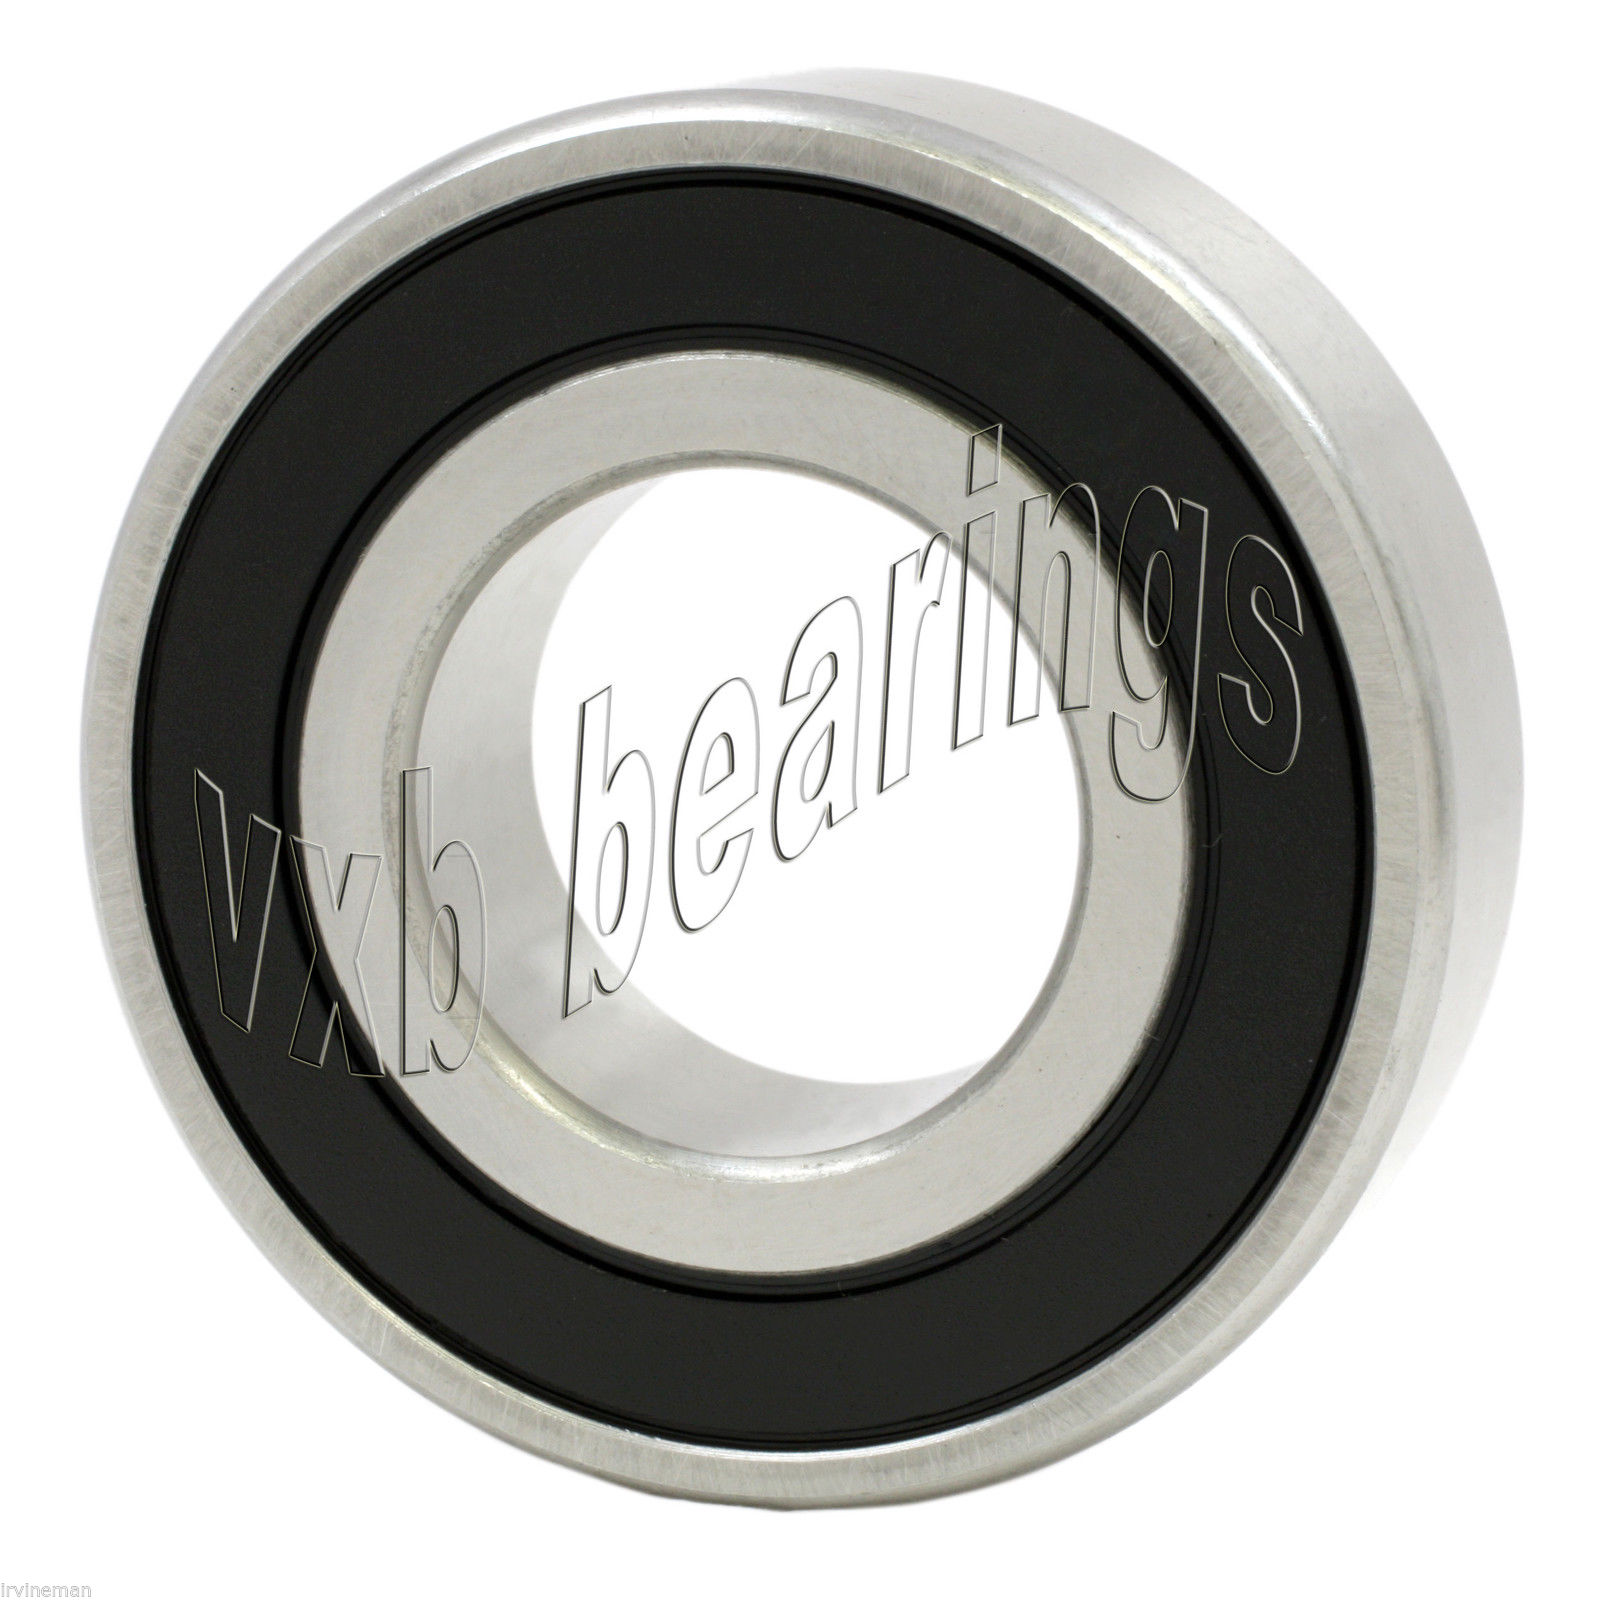 high temperature S6004-2RS Bearing Si3N4 Ceramic Sealed 20mm ABEC-5 Bearings Rolling